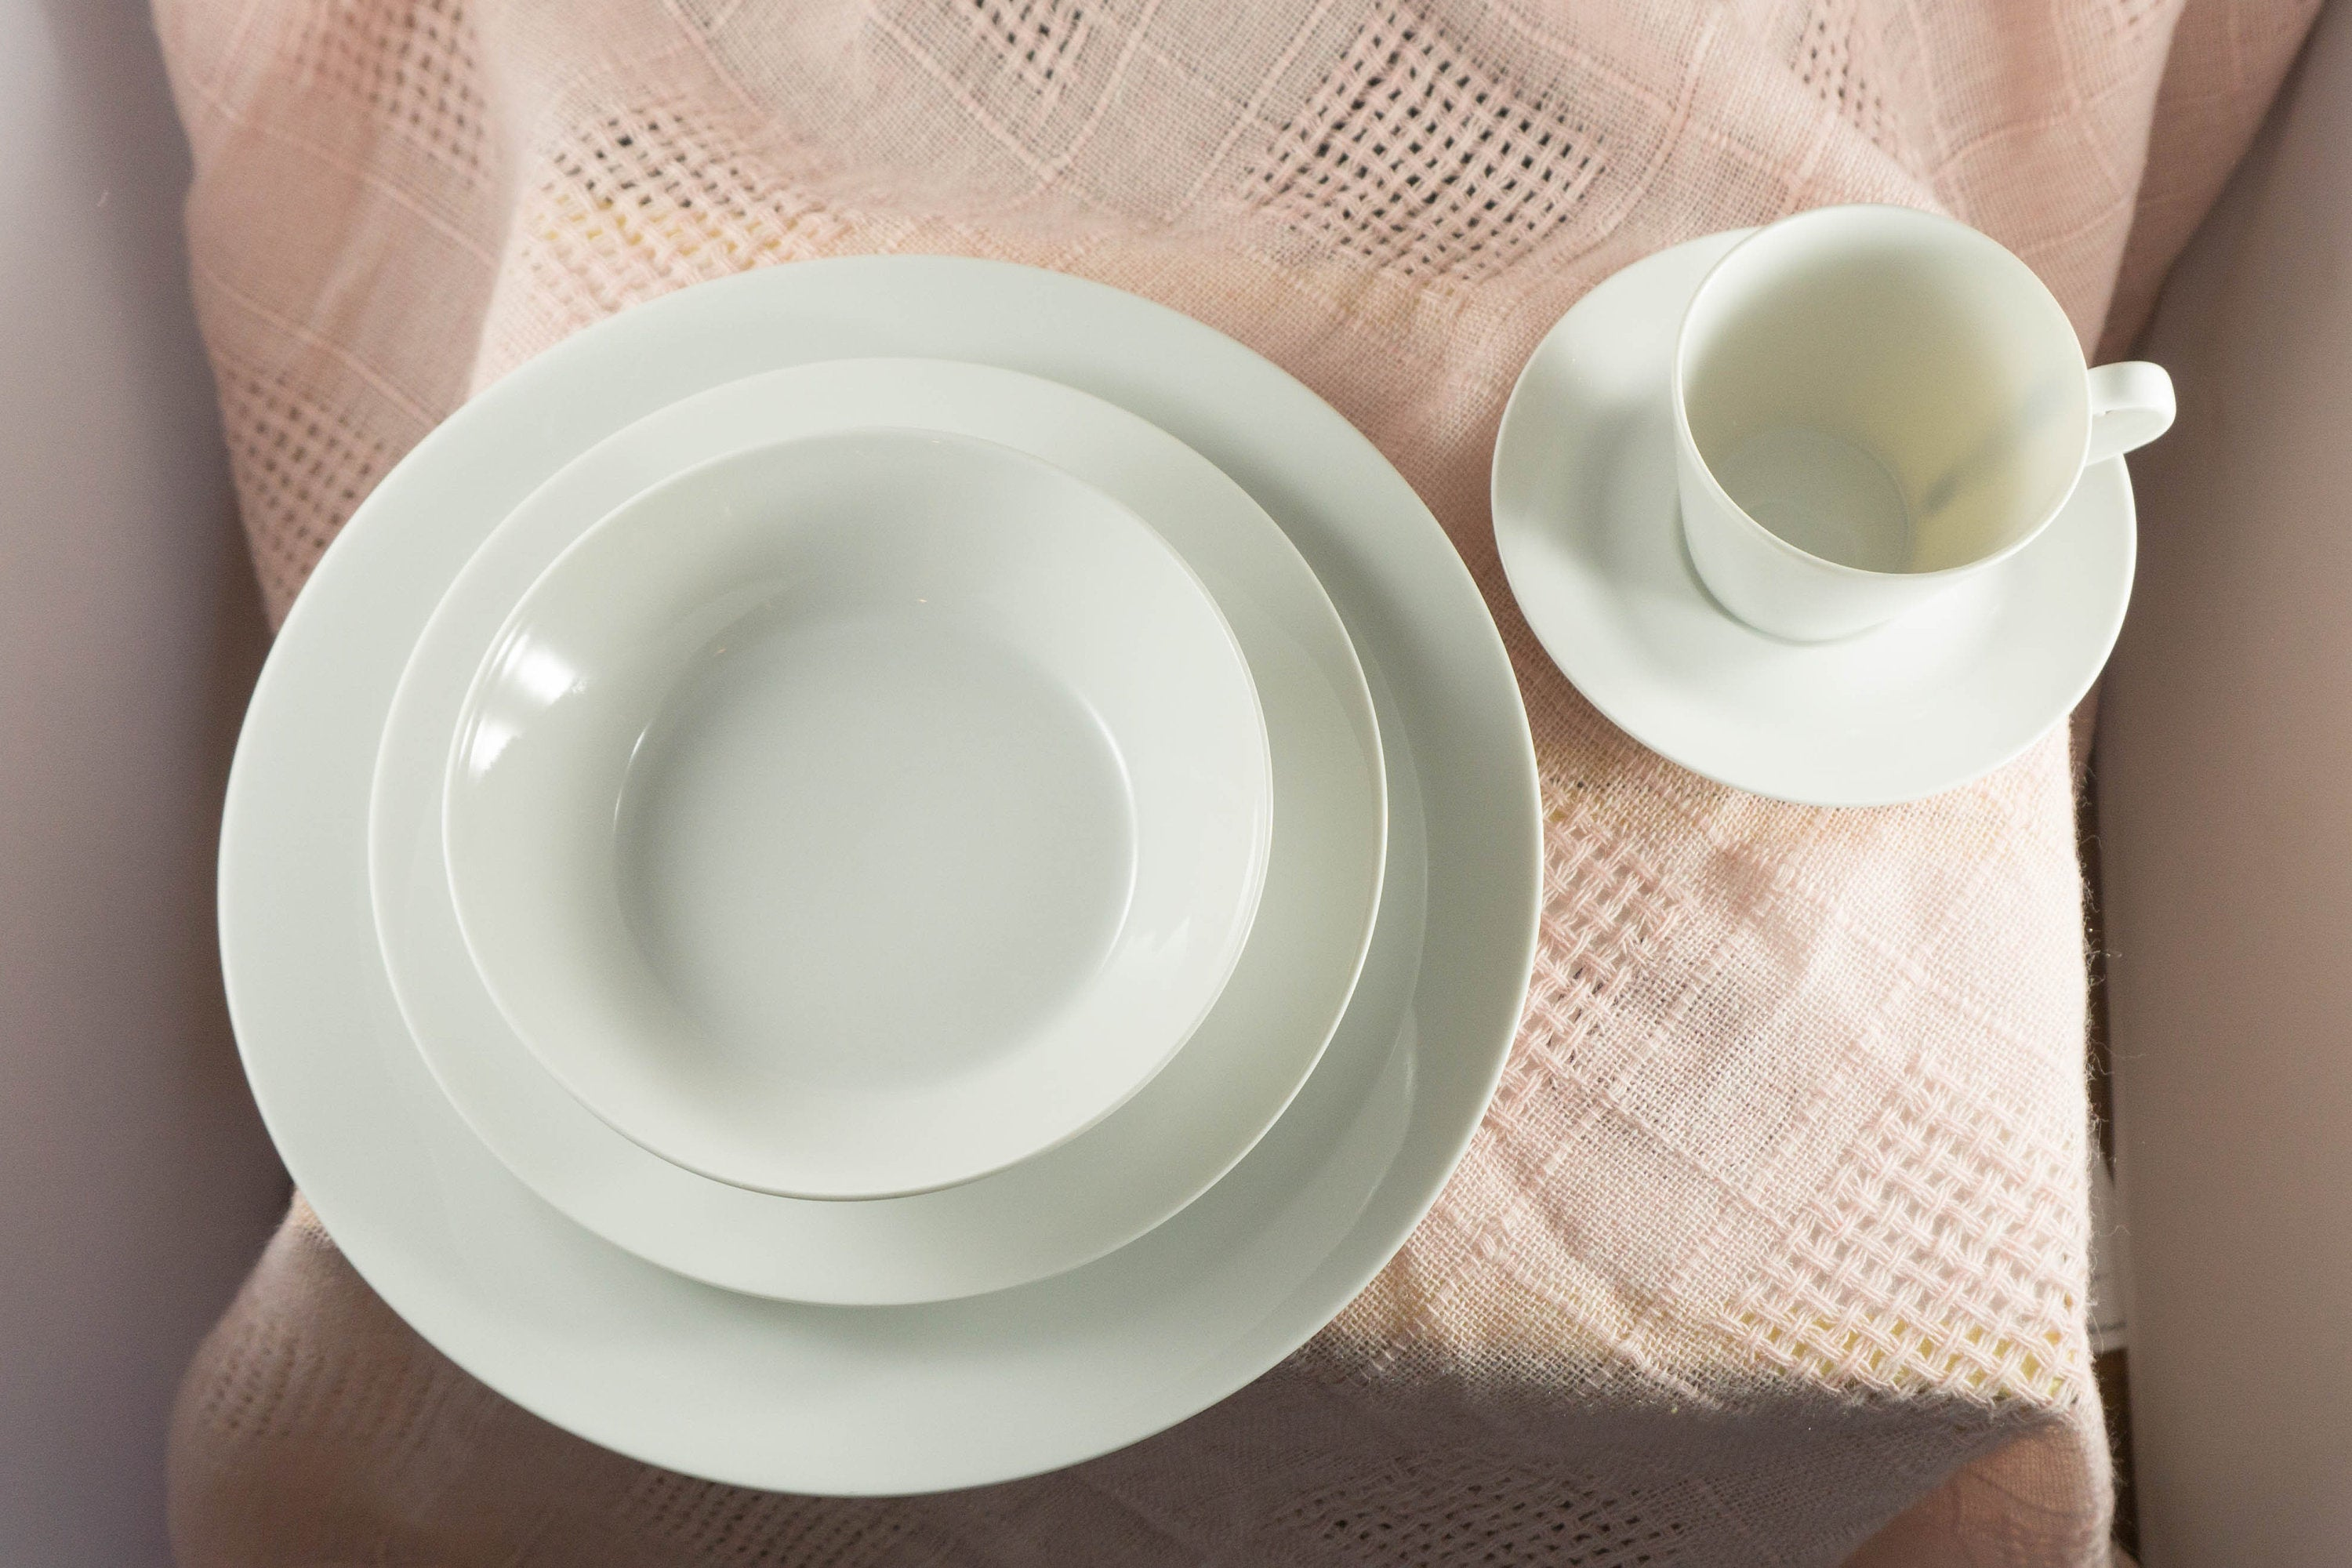 White Mid Century Modern Fairwood Fancy Free China 5 Piece Place Setting - Schonwald Germany 1950s